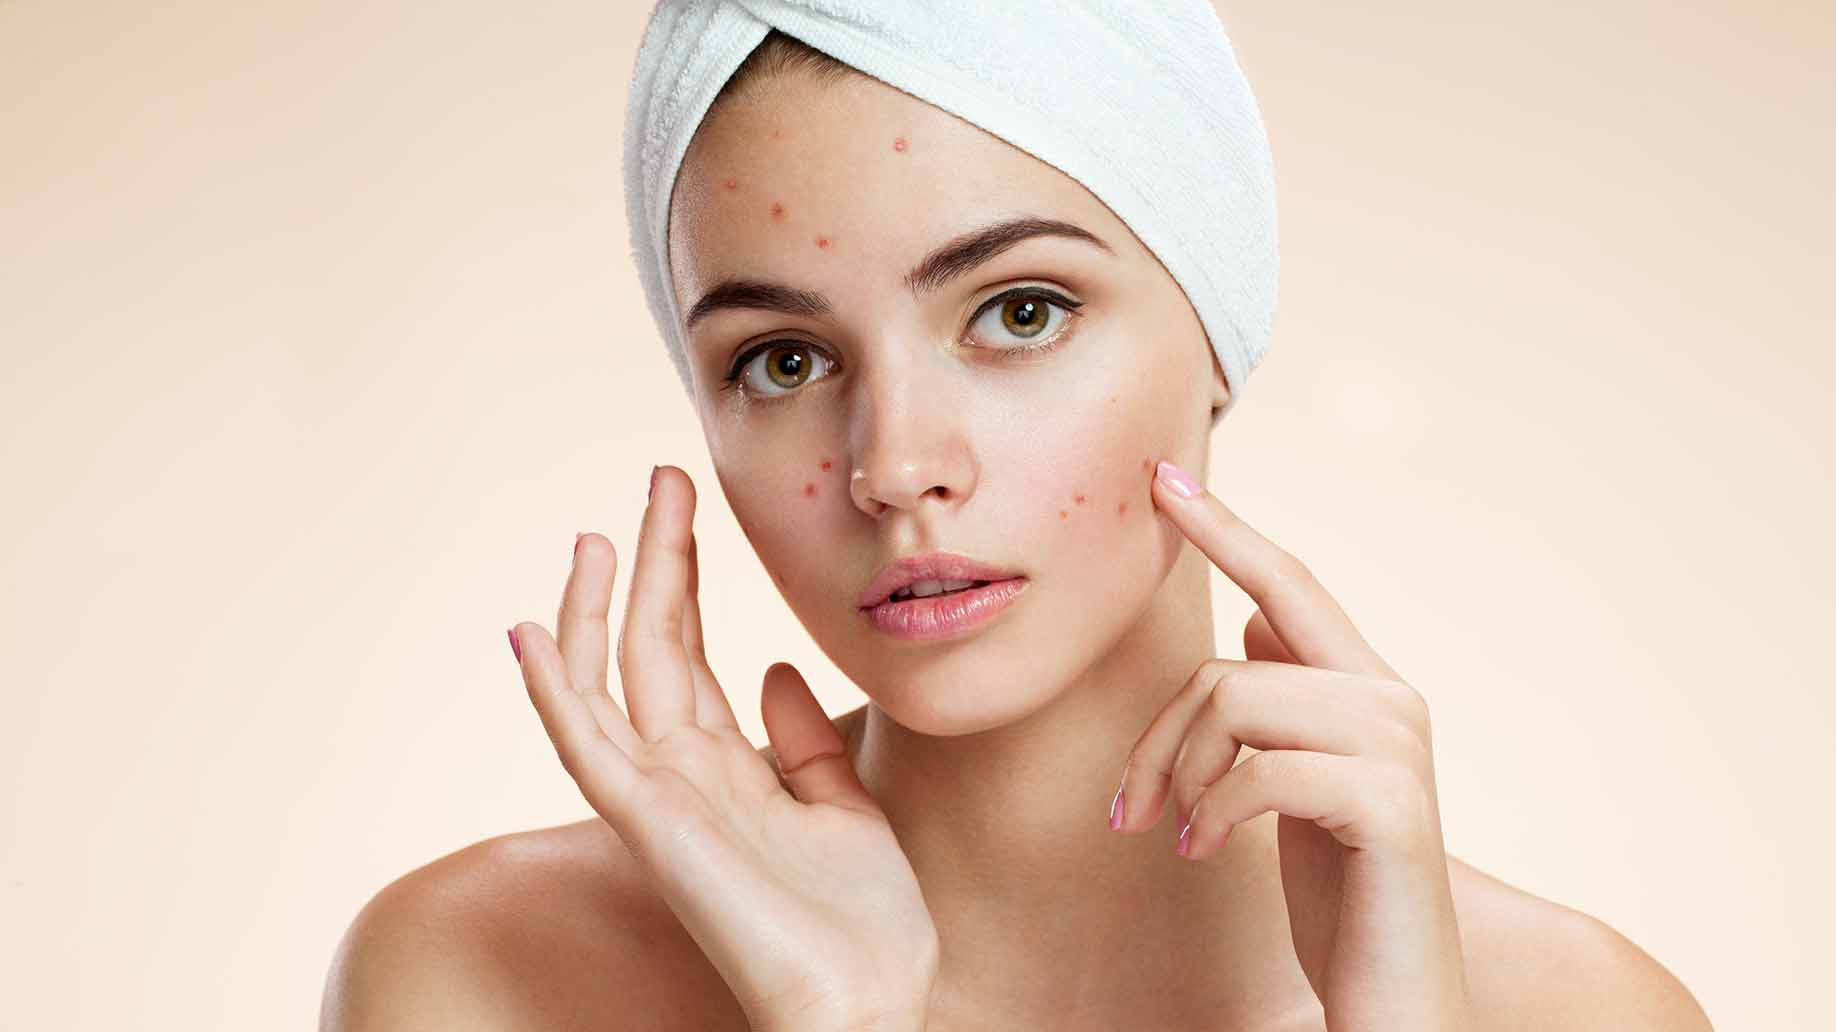 Scars, spots, discolouration… let's brighten and heal our complexion